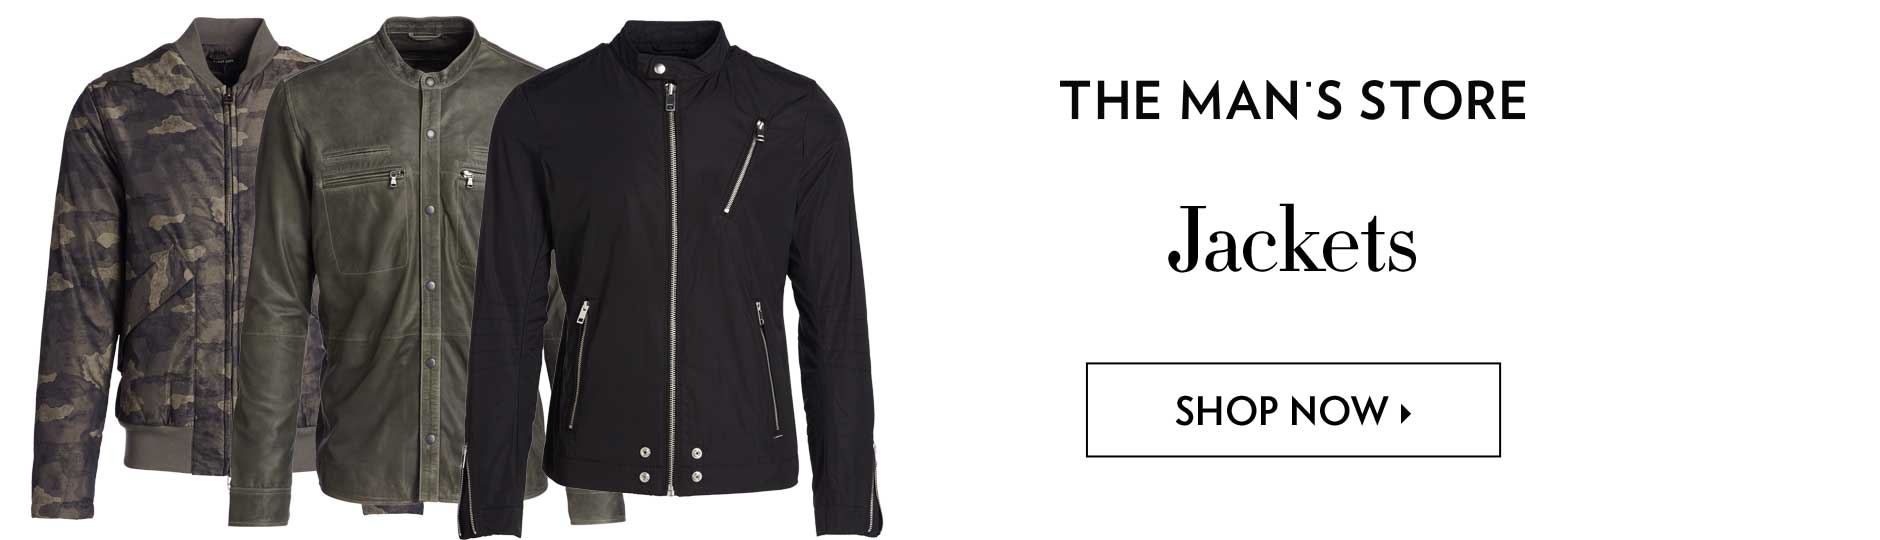 The Man's Store - Jackets